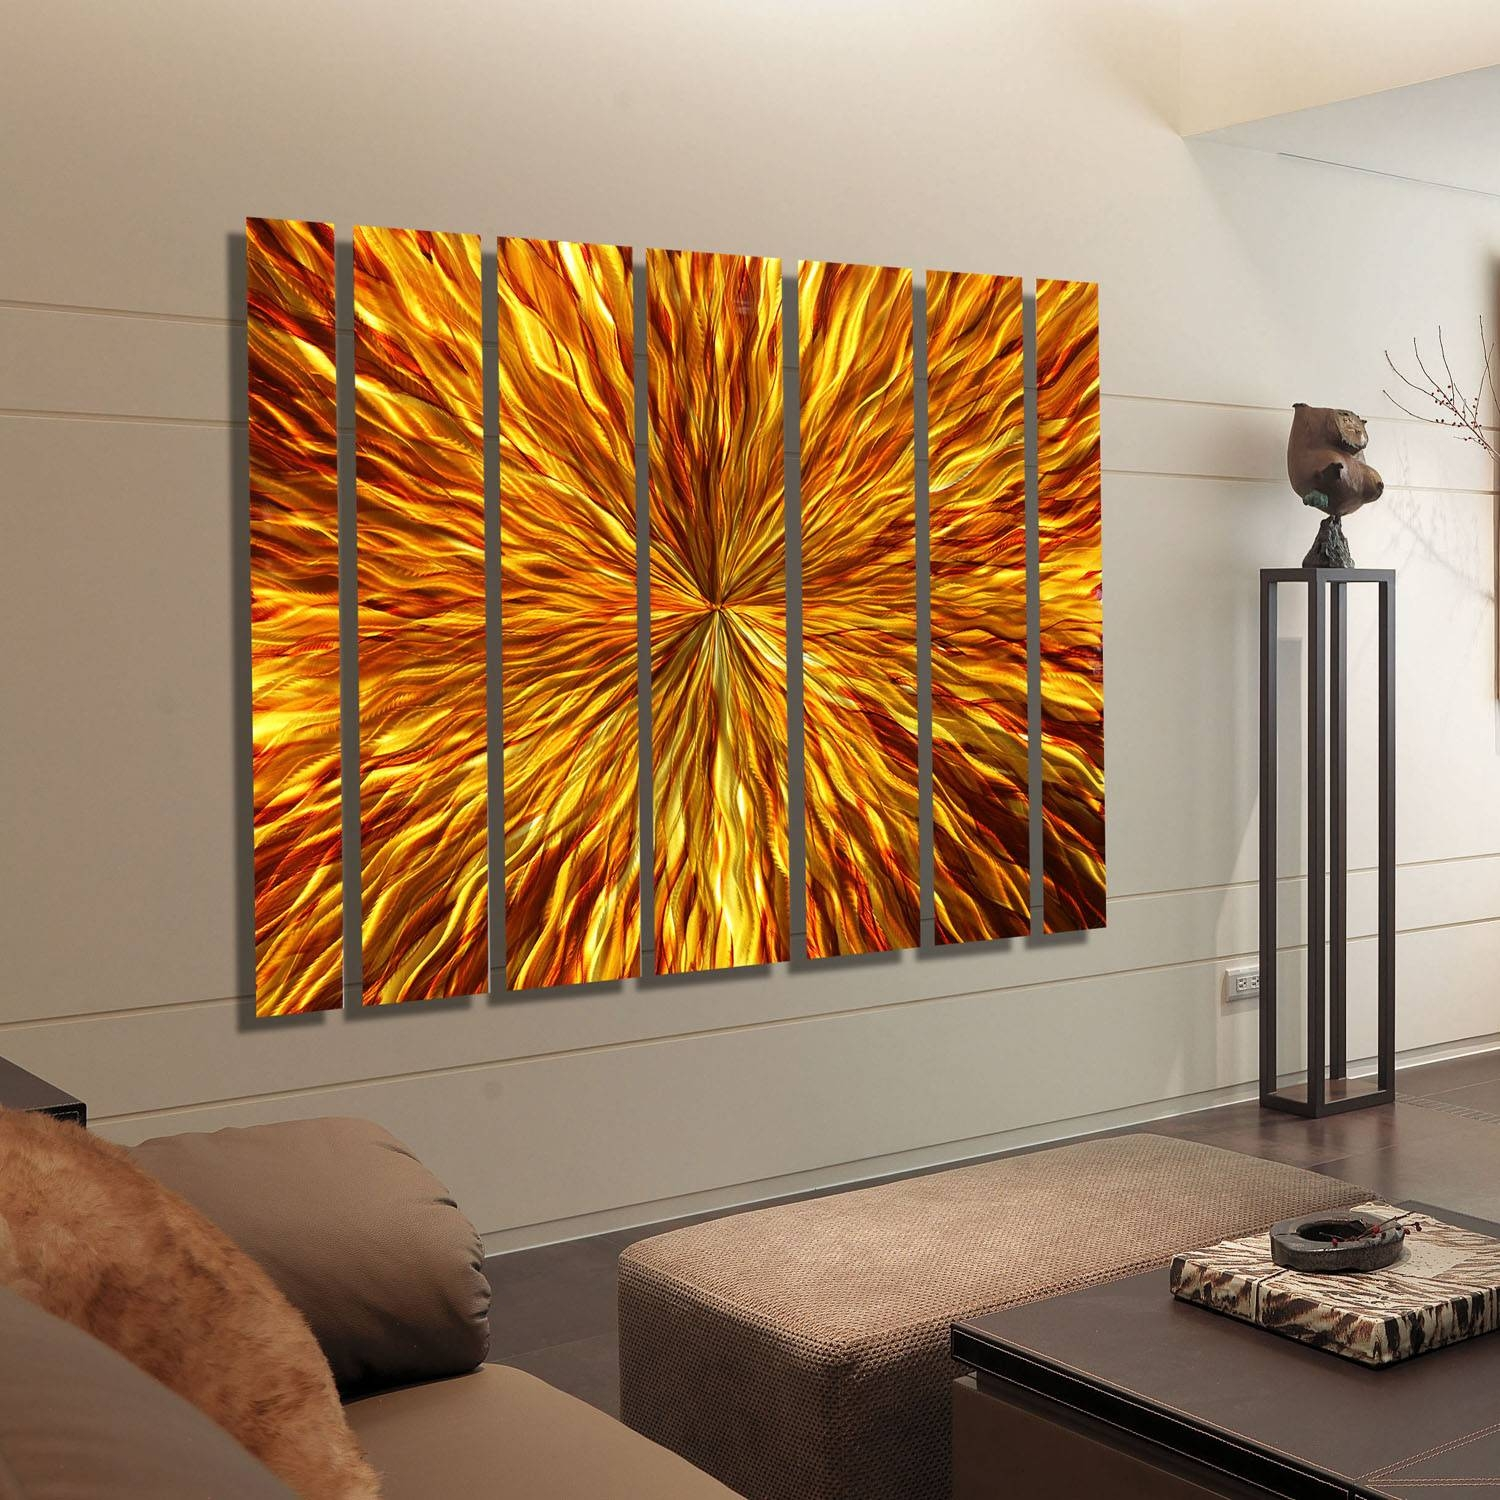 Amber Vortex Xl – Extra Large Modern Metal Wall Artjon Allen Pertaining To Most Recently Released Orange Metal Wall Art (View 3 of 20)